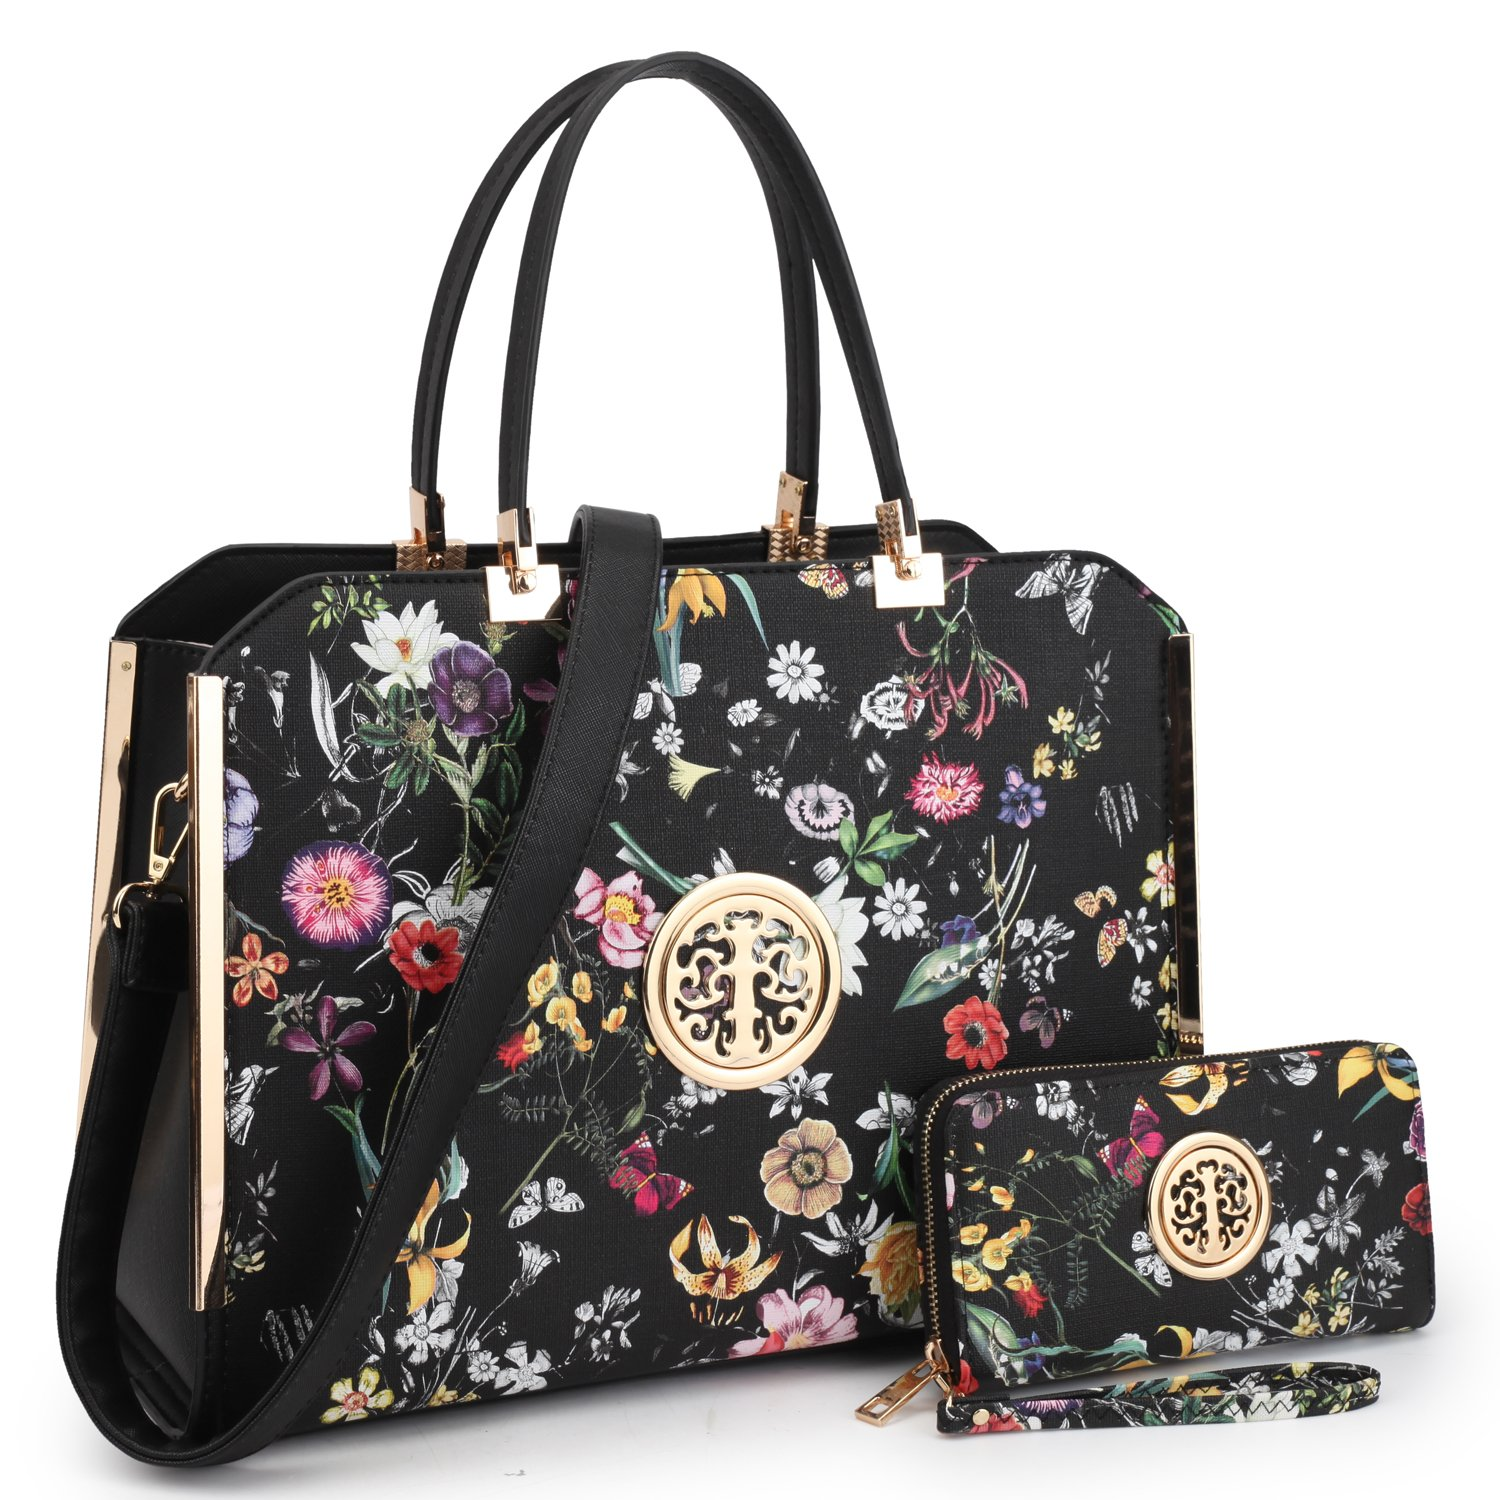 Women's Fashion Handbags Satchel Shoulder Bags Top Handle Purse with Matching Wallet(12-6900-W-BKF)